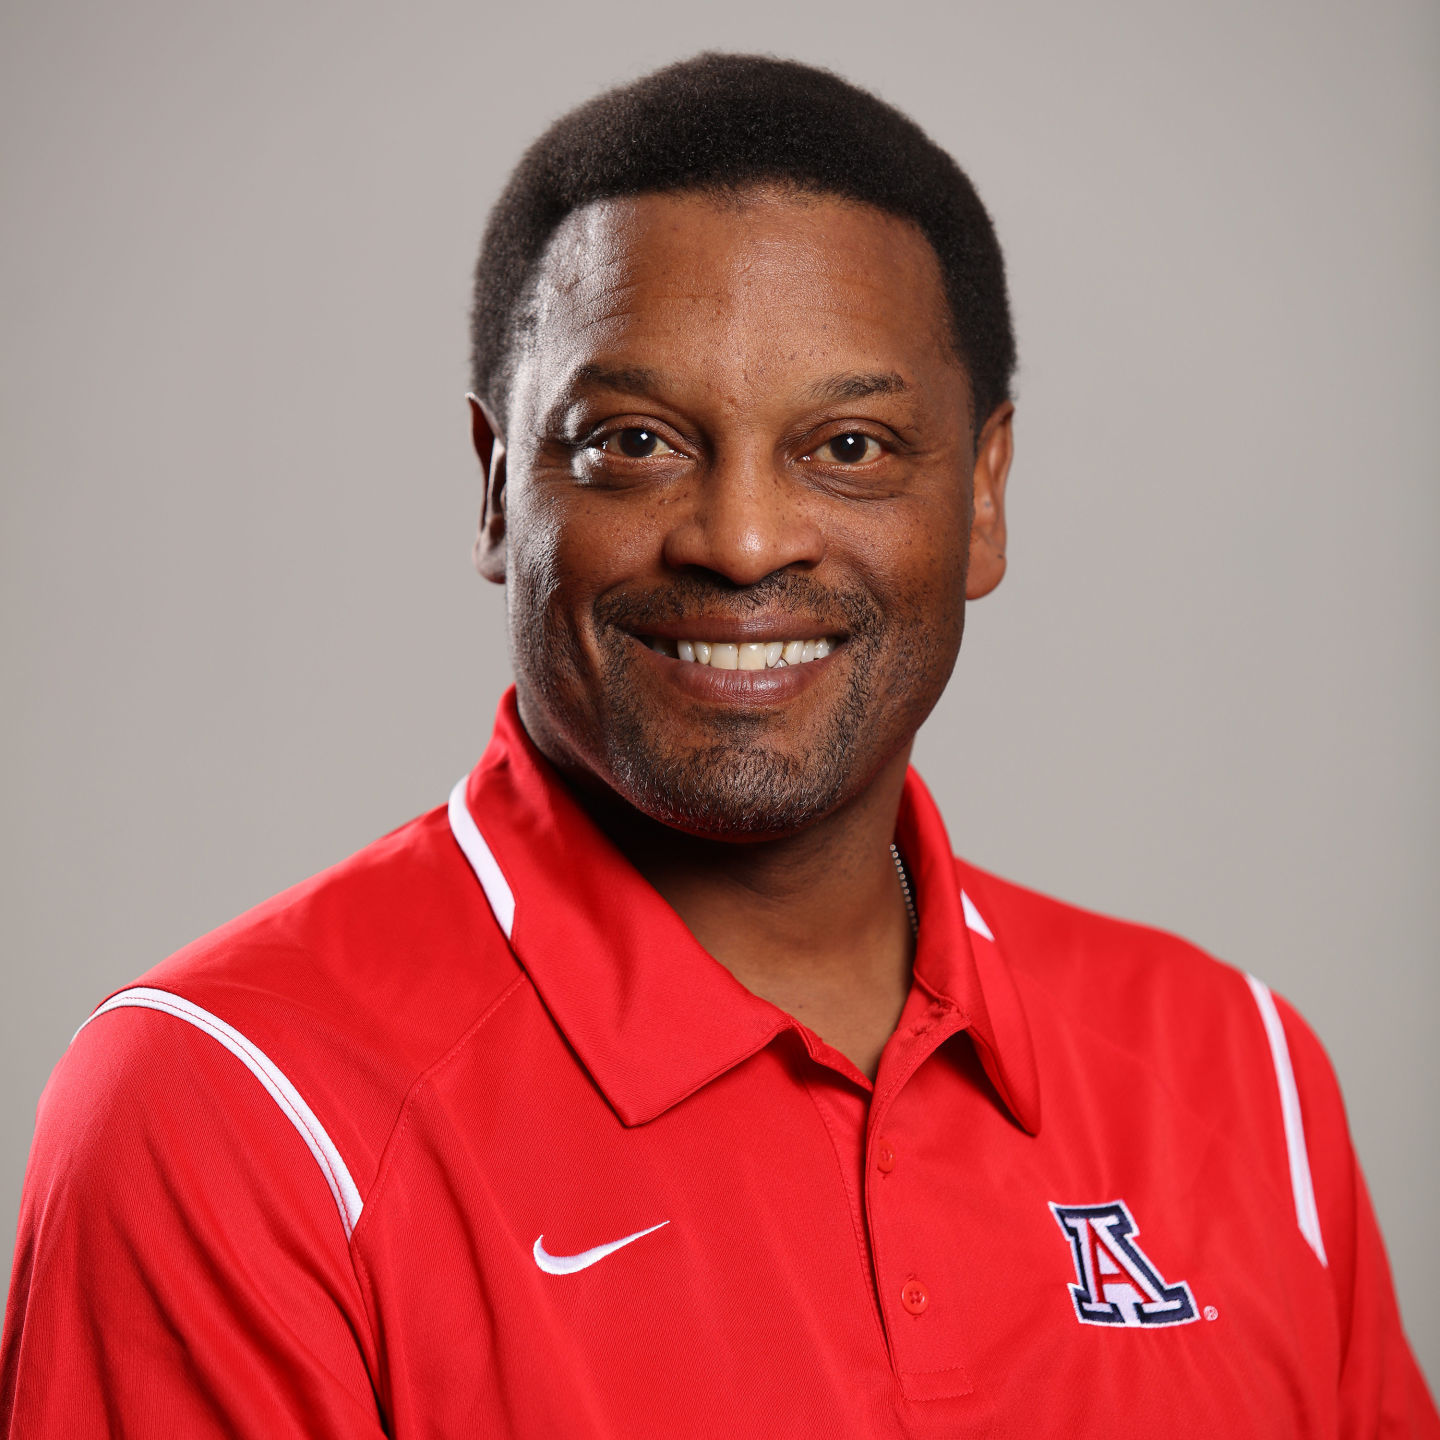 Sumlin getting fired for sexual harassment